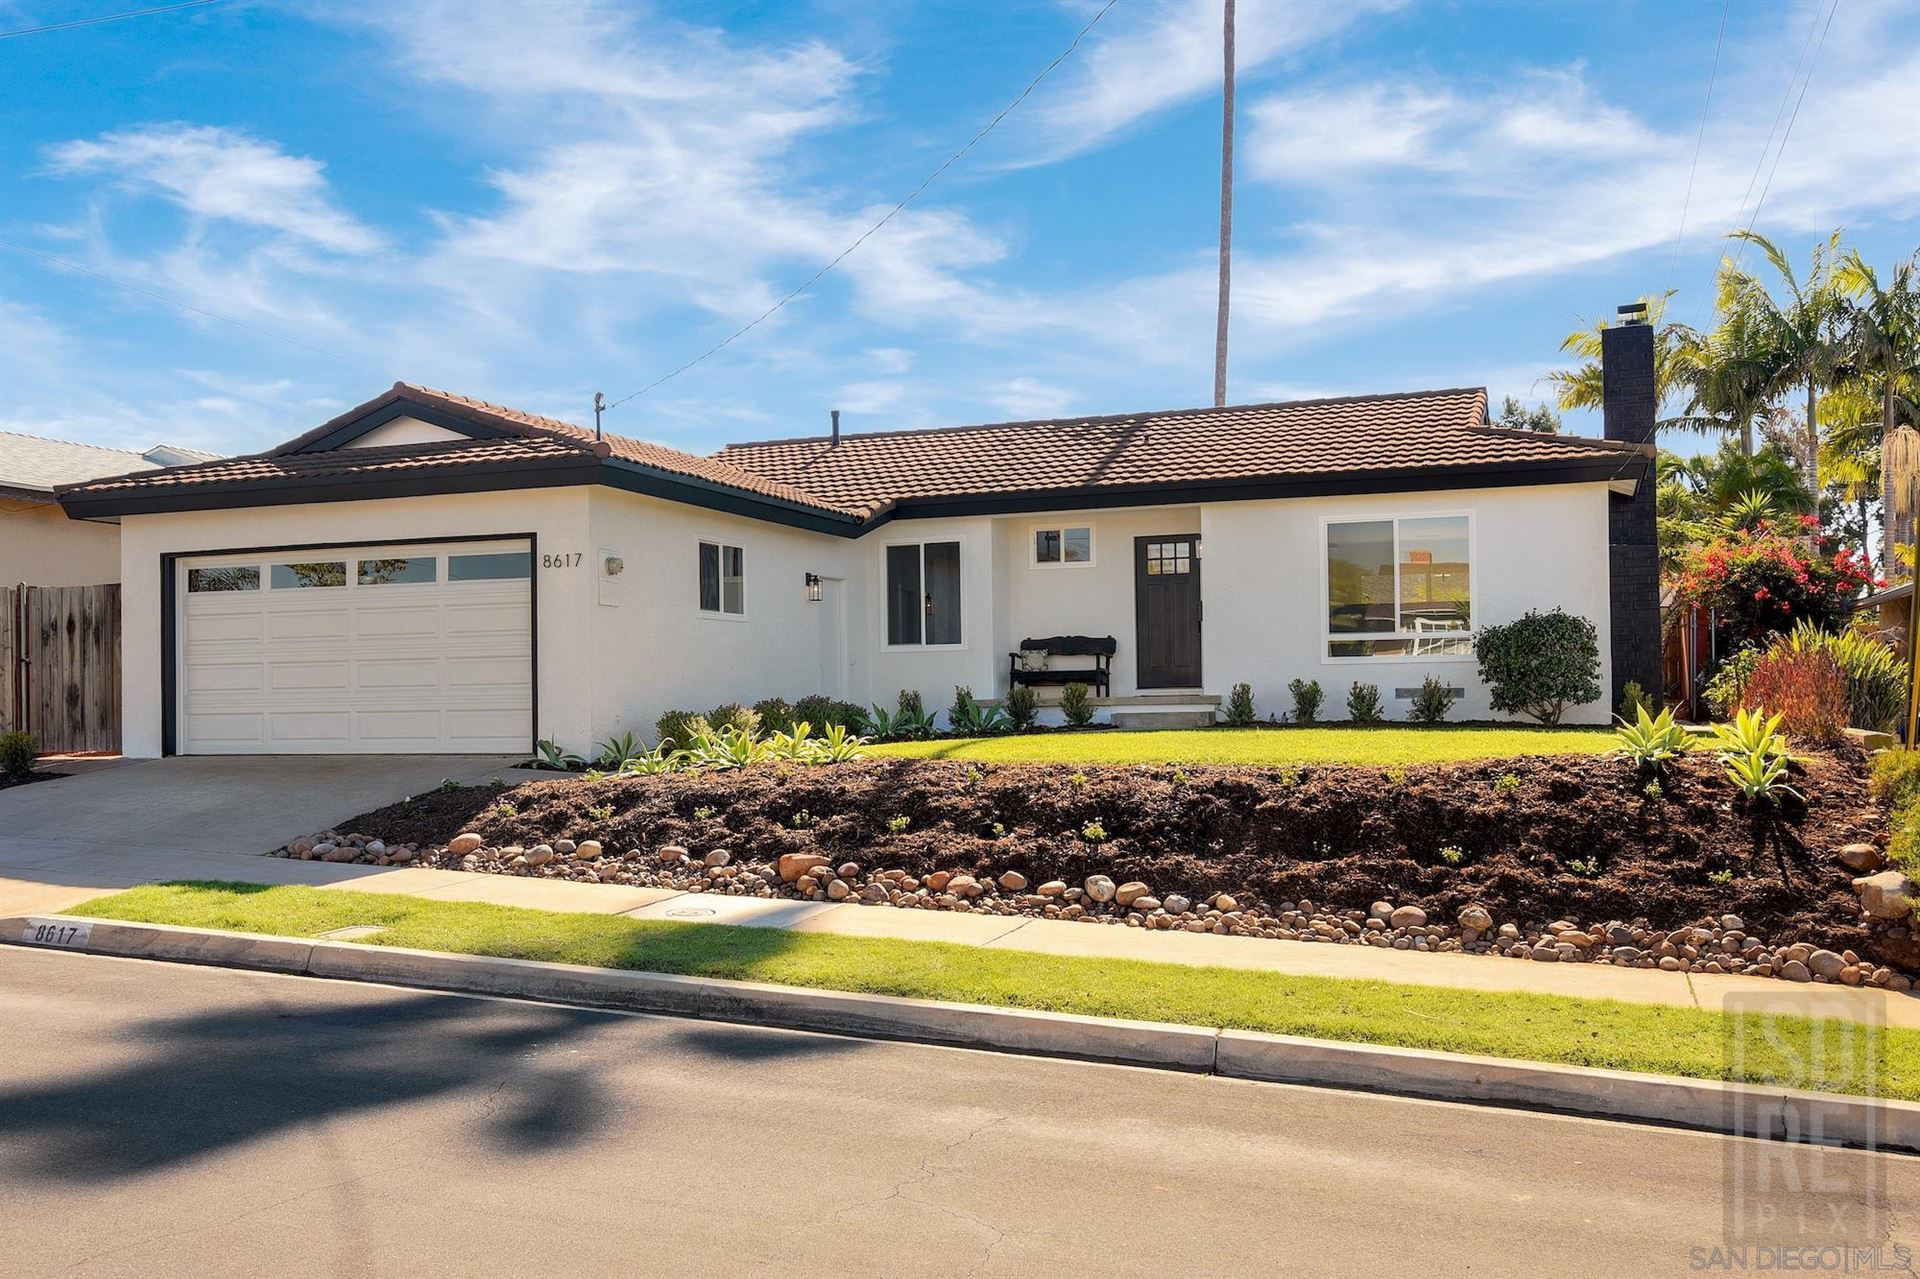 Photo for 8617 Somerset Avenue, San Diego, CA 92123 (MLS # 210001003)